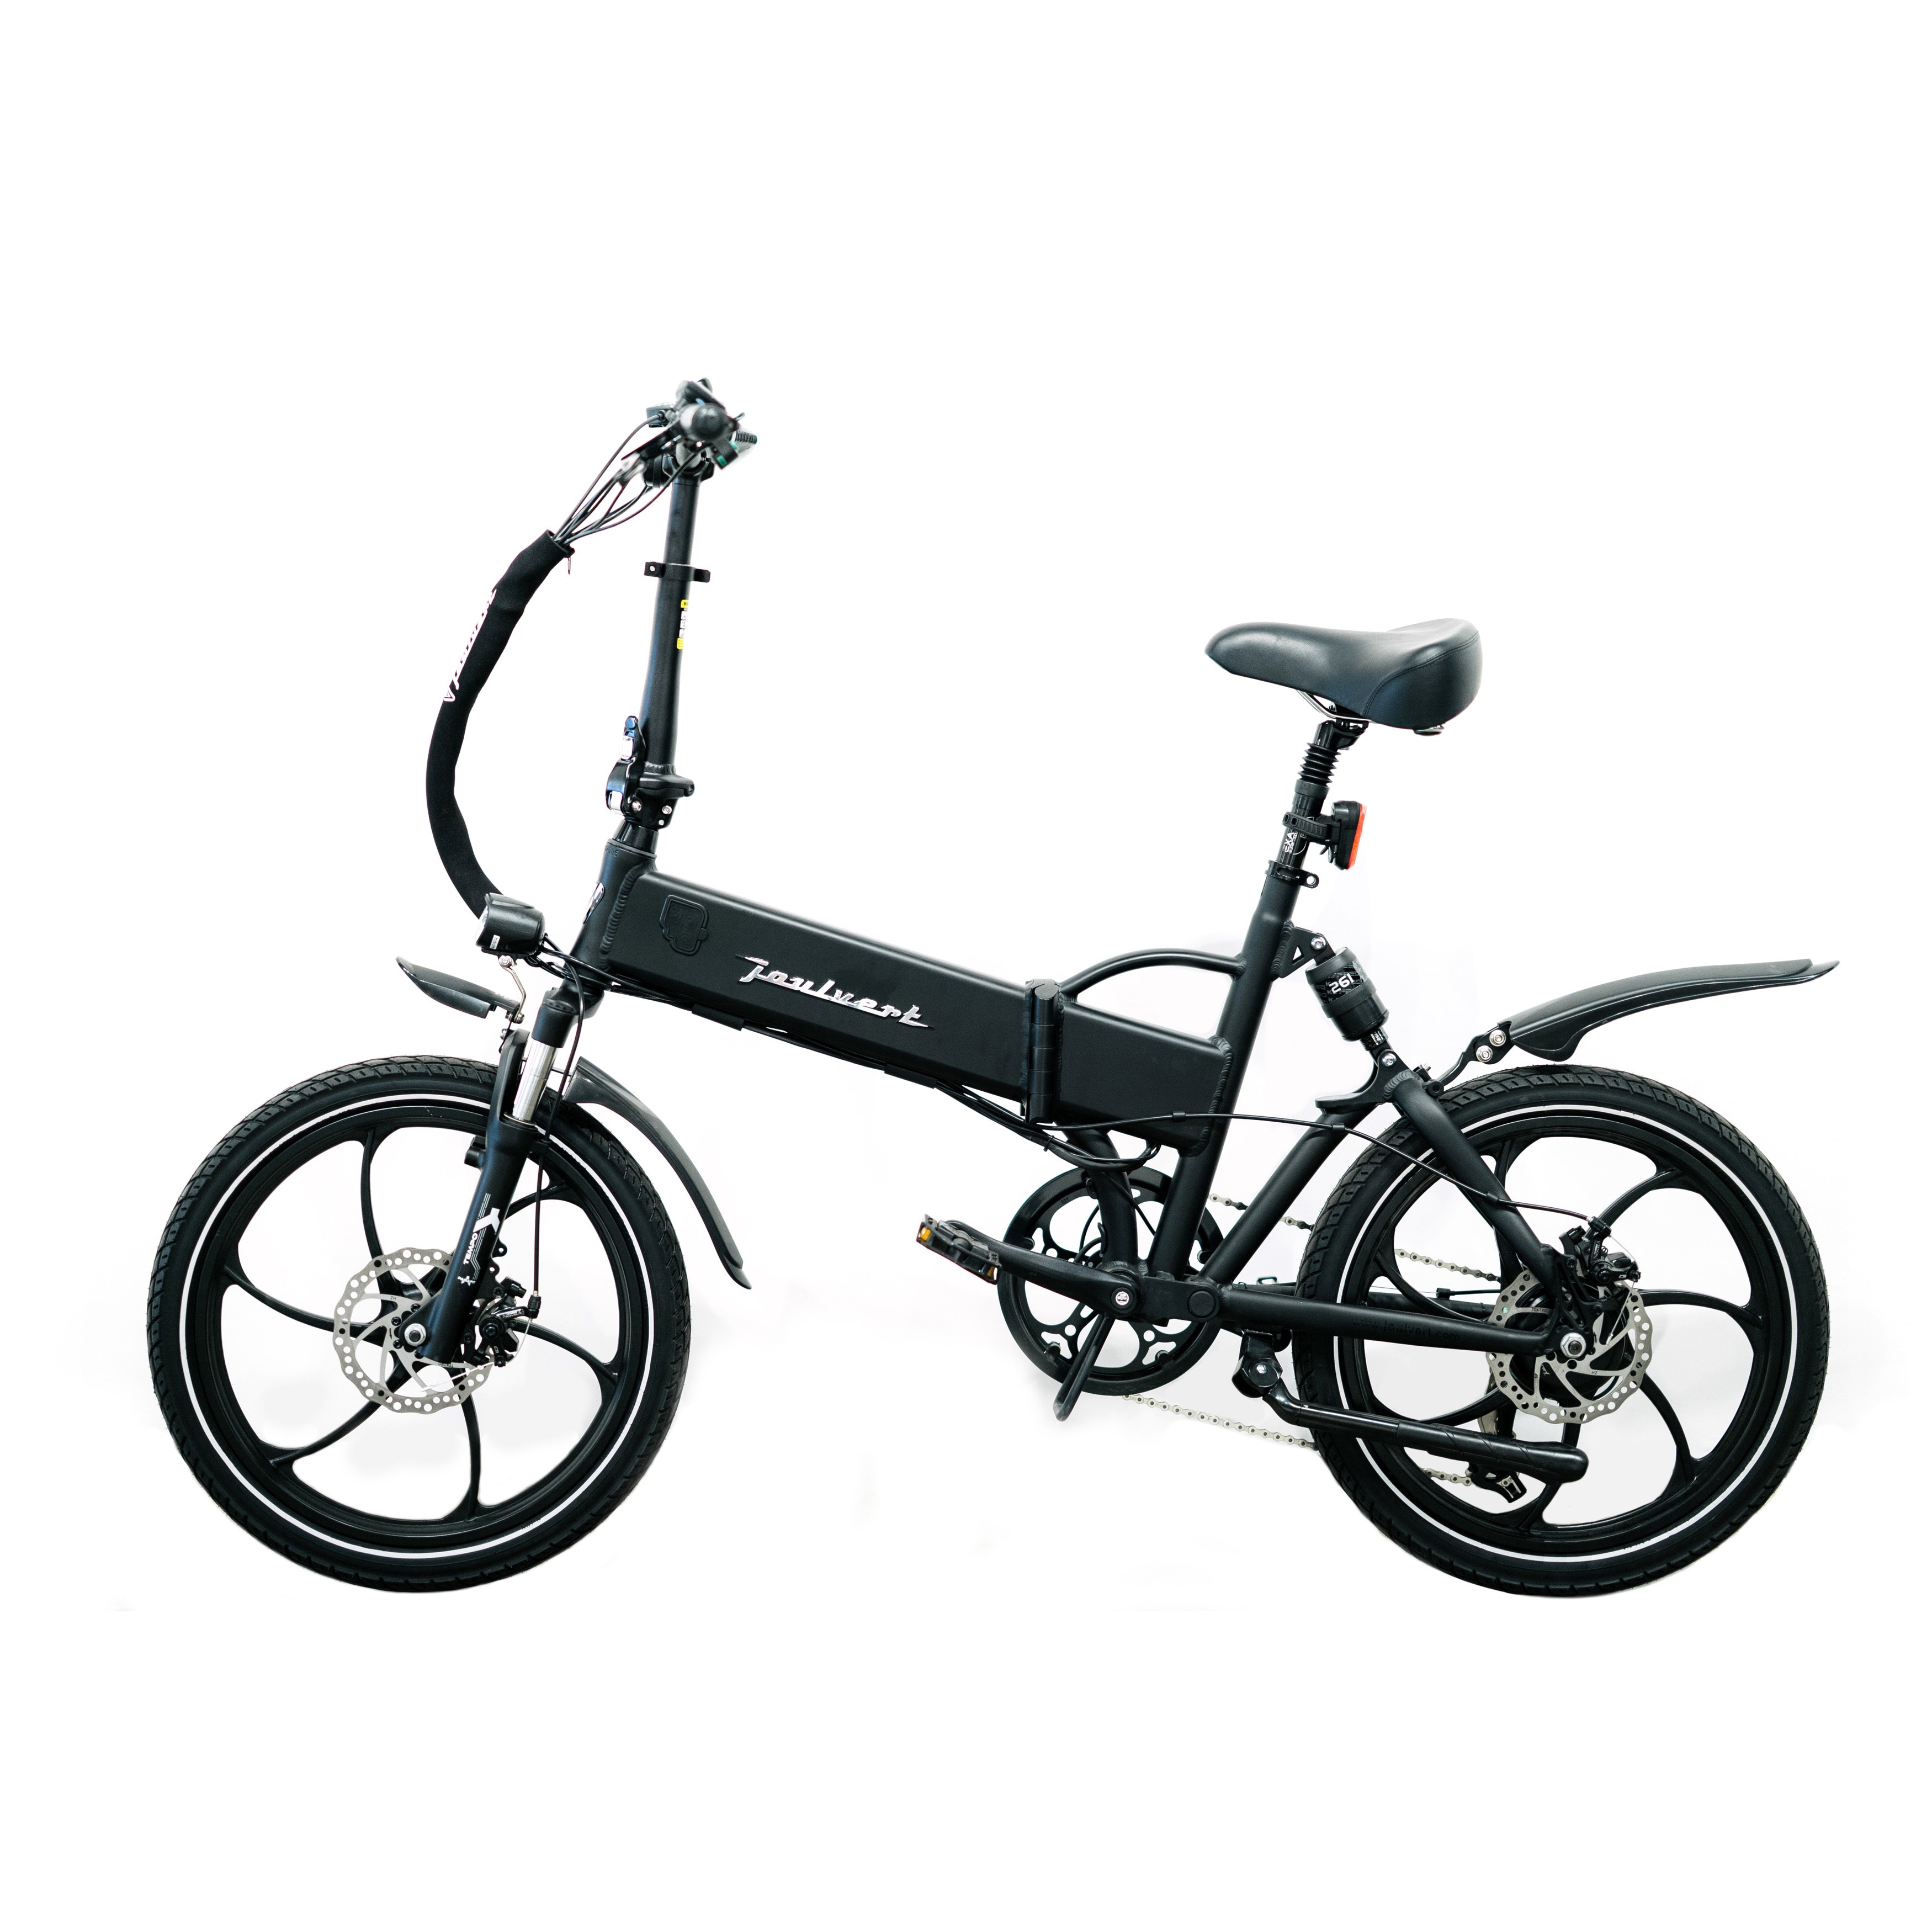 Panasonic Joulvert Stealth Folding Electric Bicycle, 20 i...